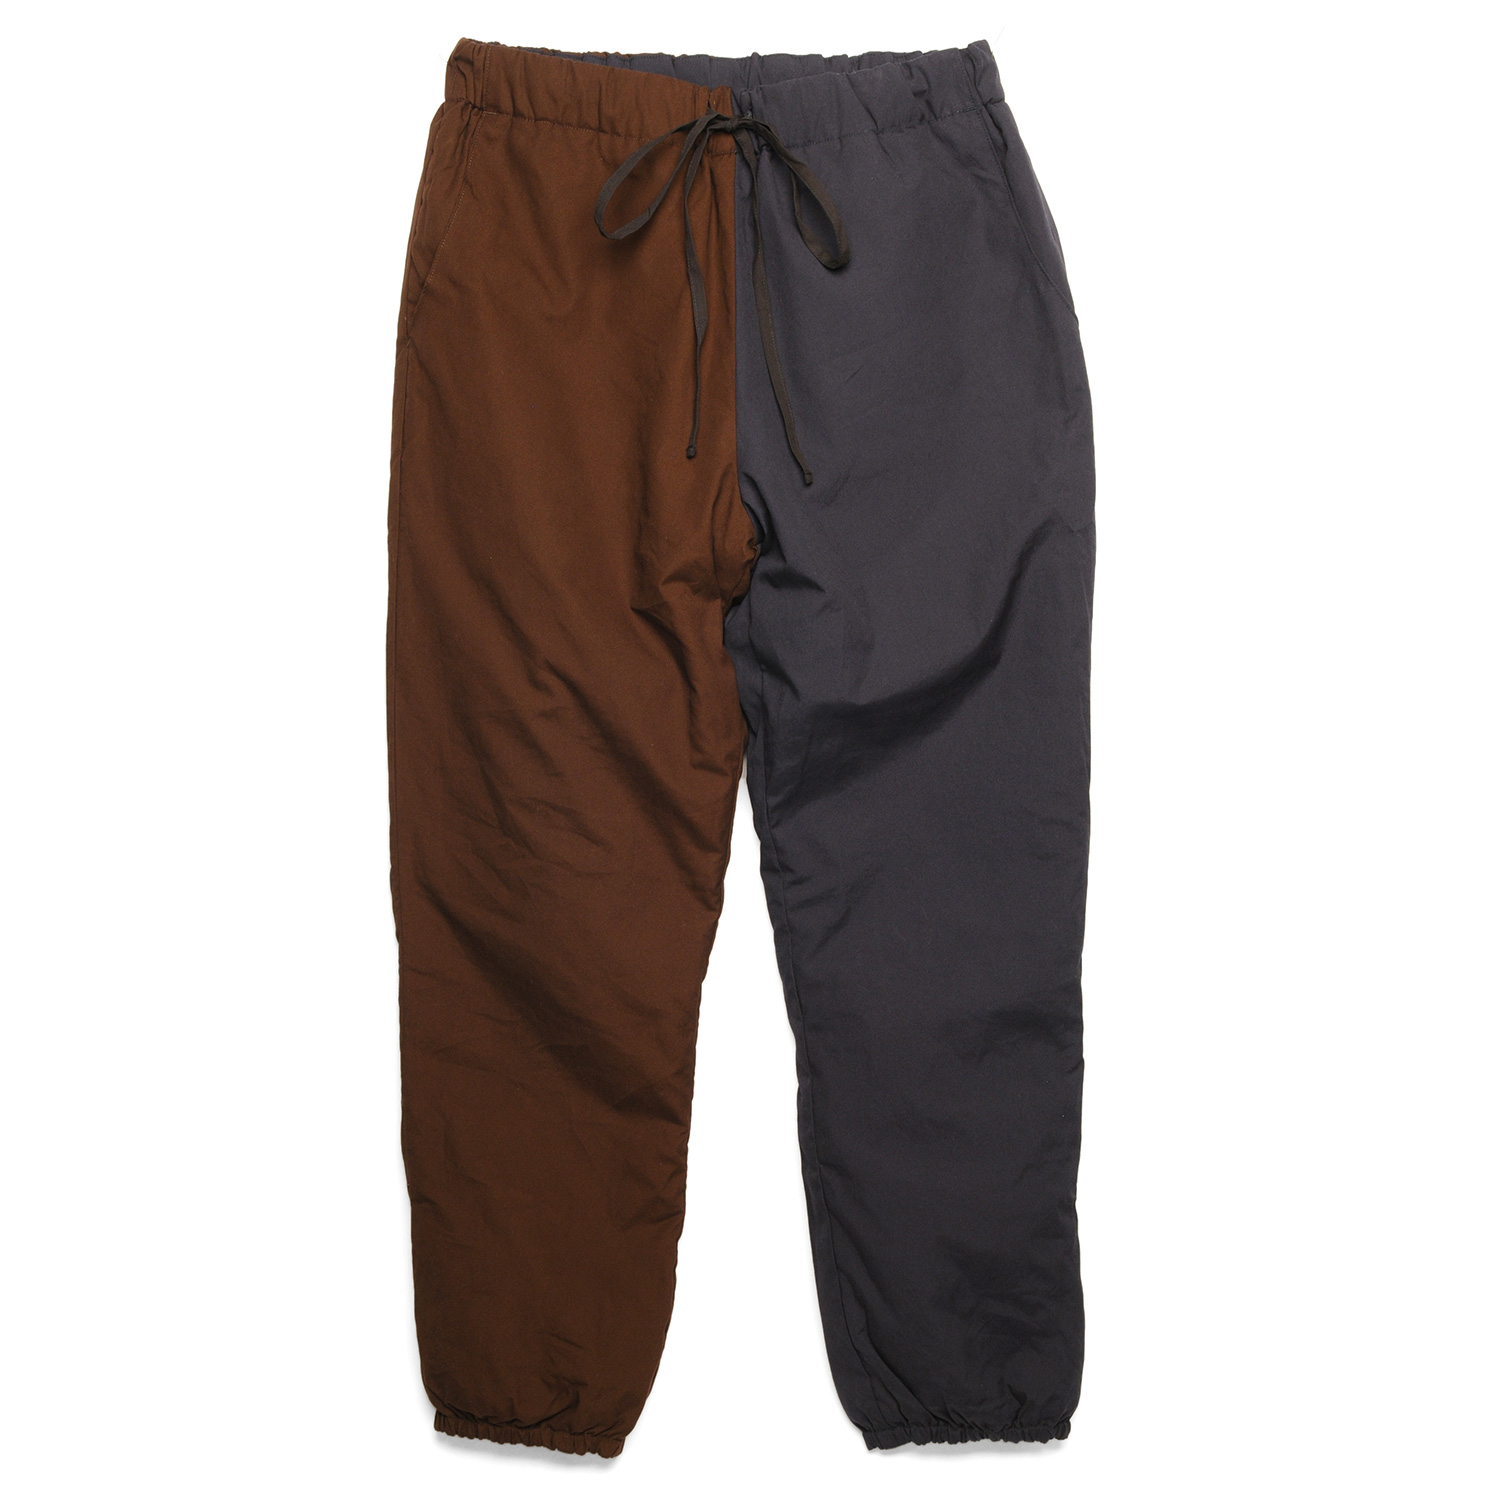 Insulated-Pants,-Brown&Navy,-Front.jpg